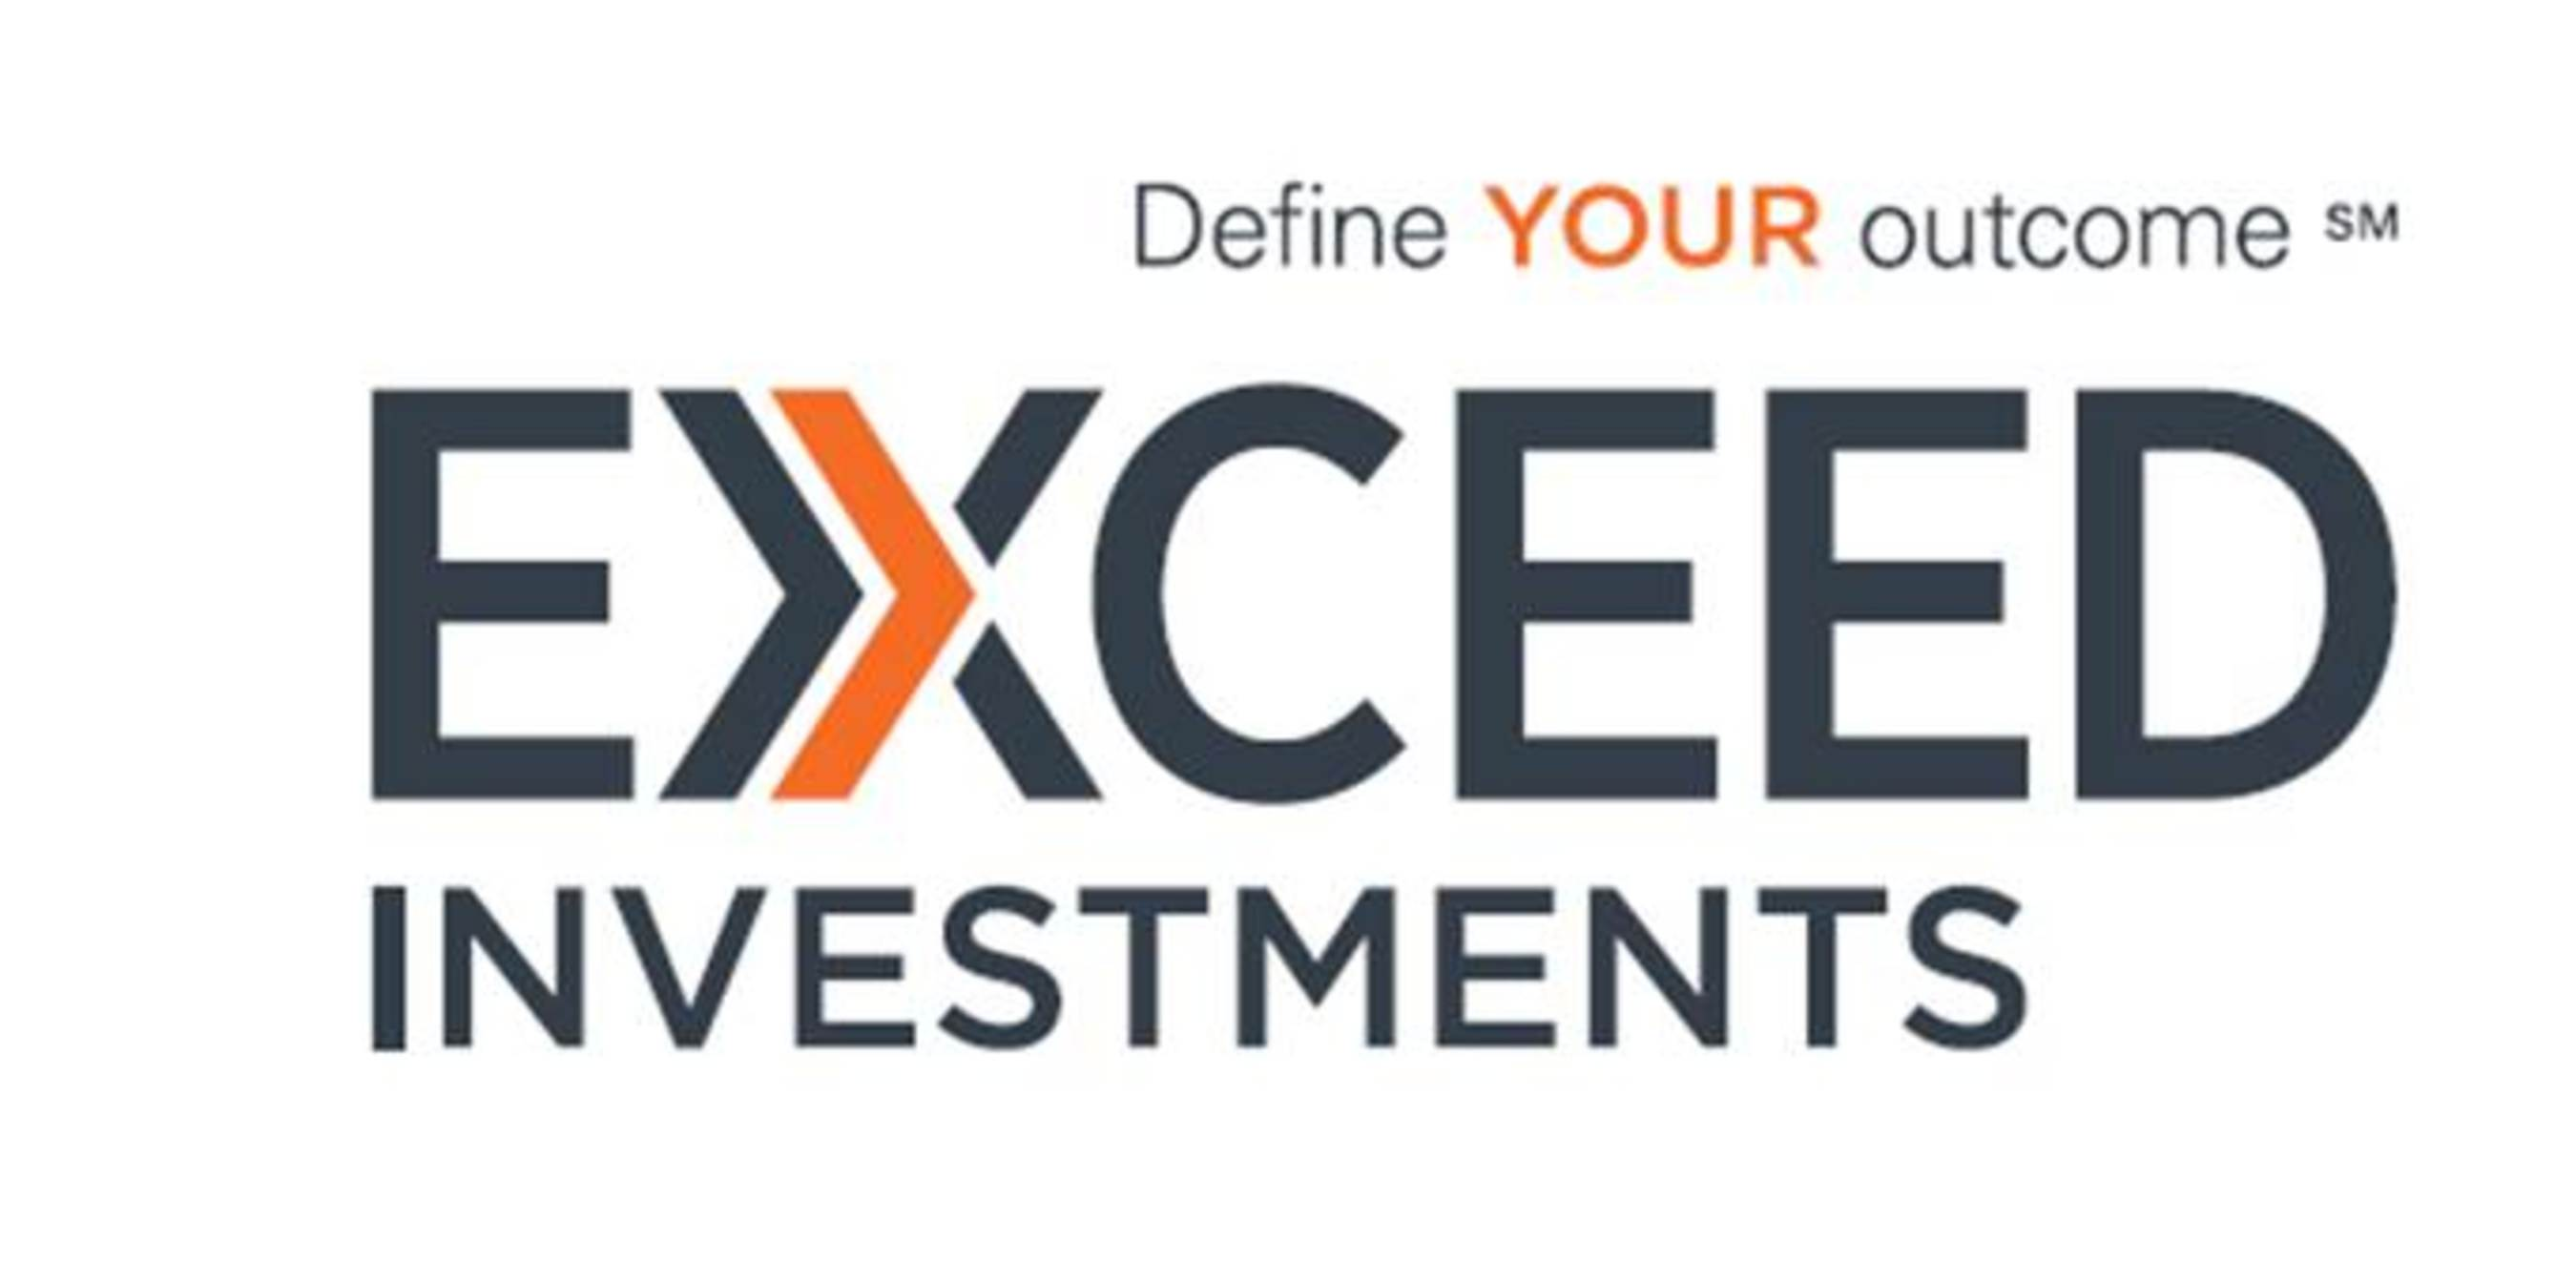 Jefferson National and Exceed Investments Launch First 'Defined Outcome' Fund within Tax-Deferred